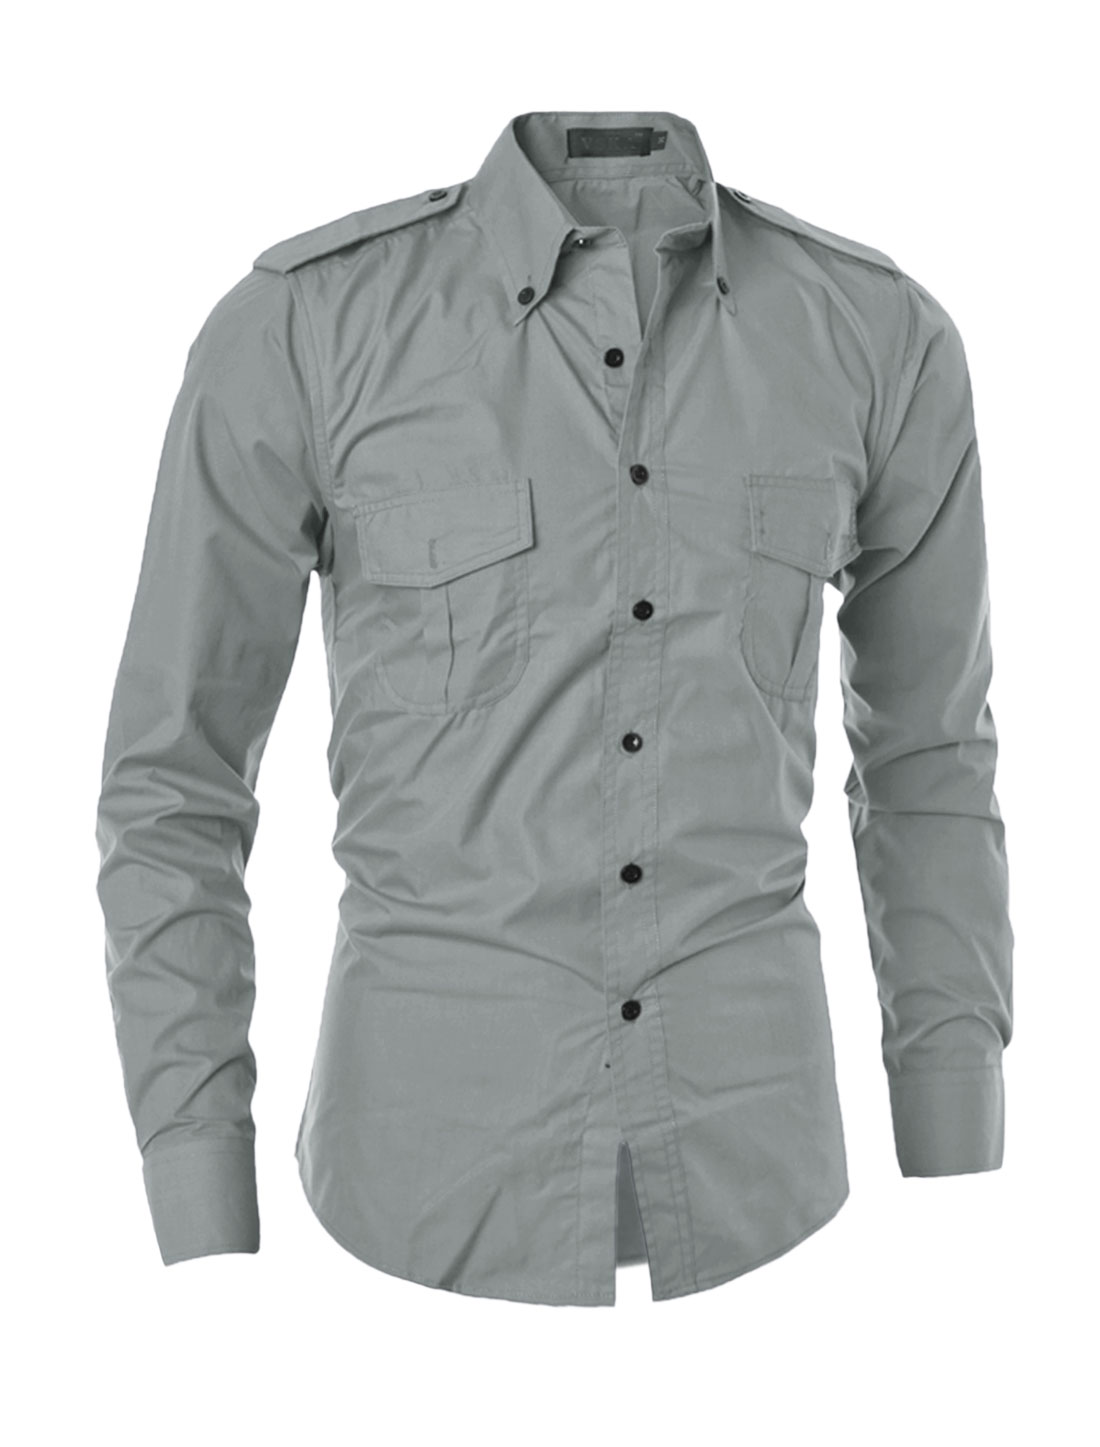 Man Flap Pockets Point Collar Buttoned Shirt Gray S